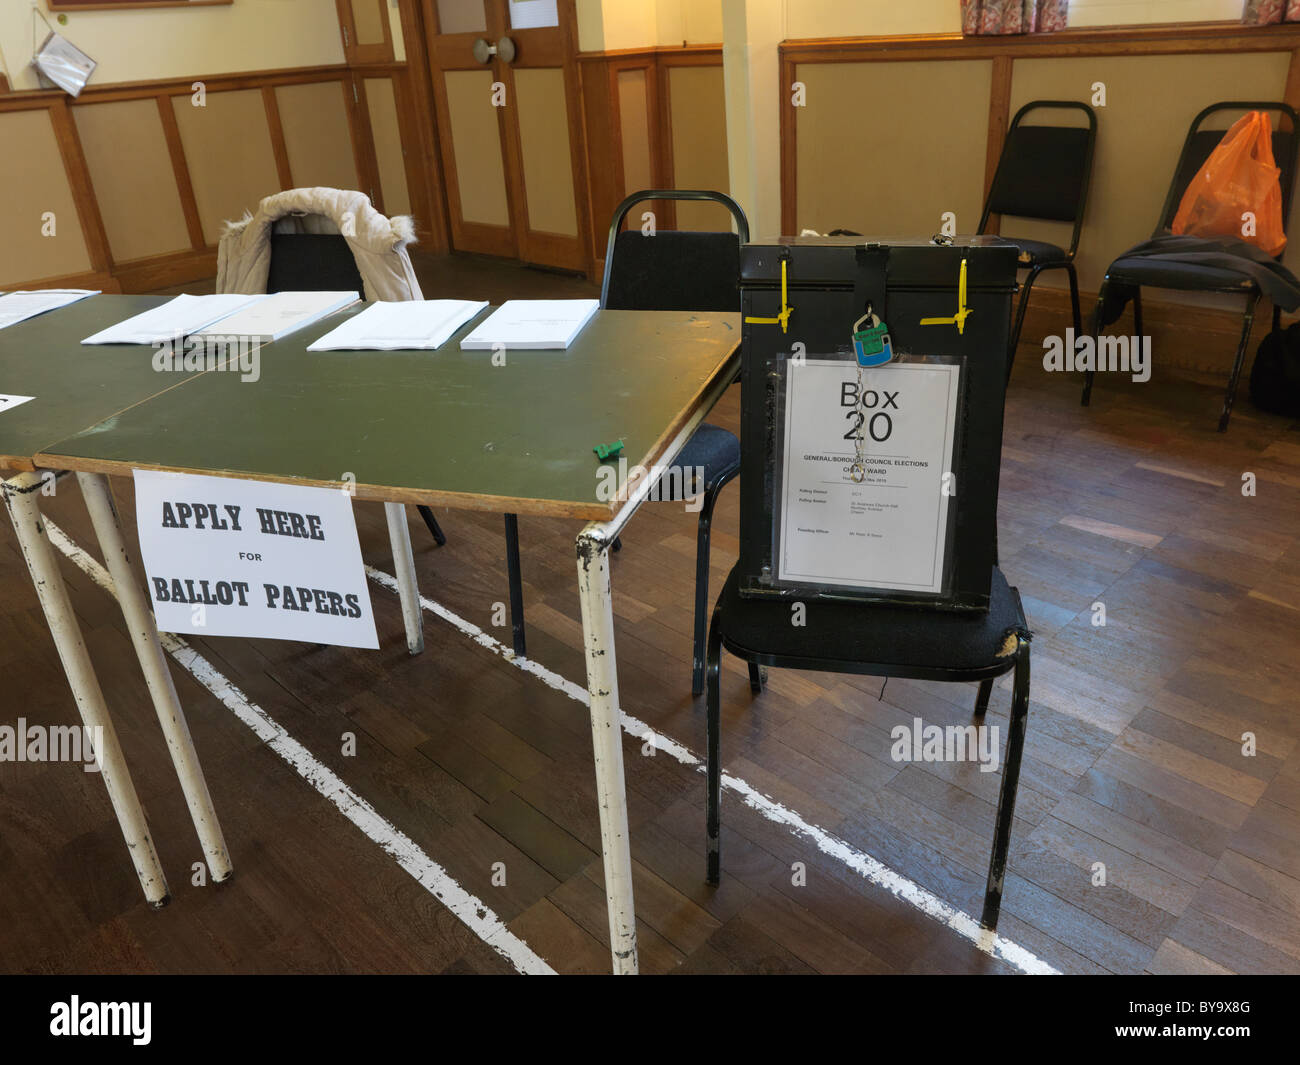 Ballot Box with Official Seals And Table With Ballot Papers General Election May 2010 in Church Hall England - Stock Image